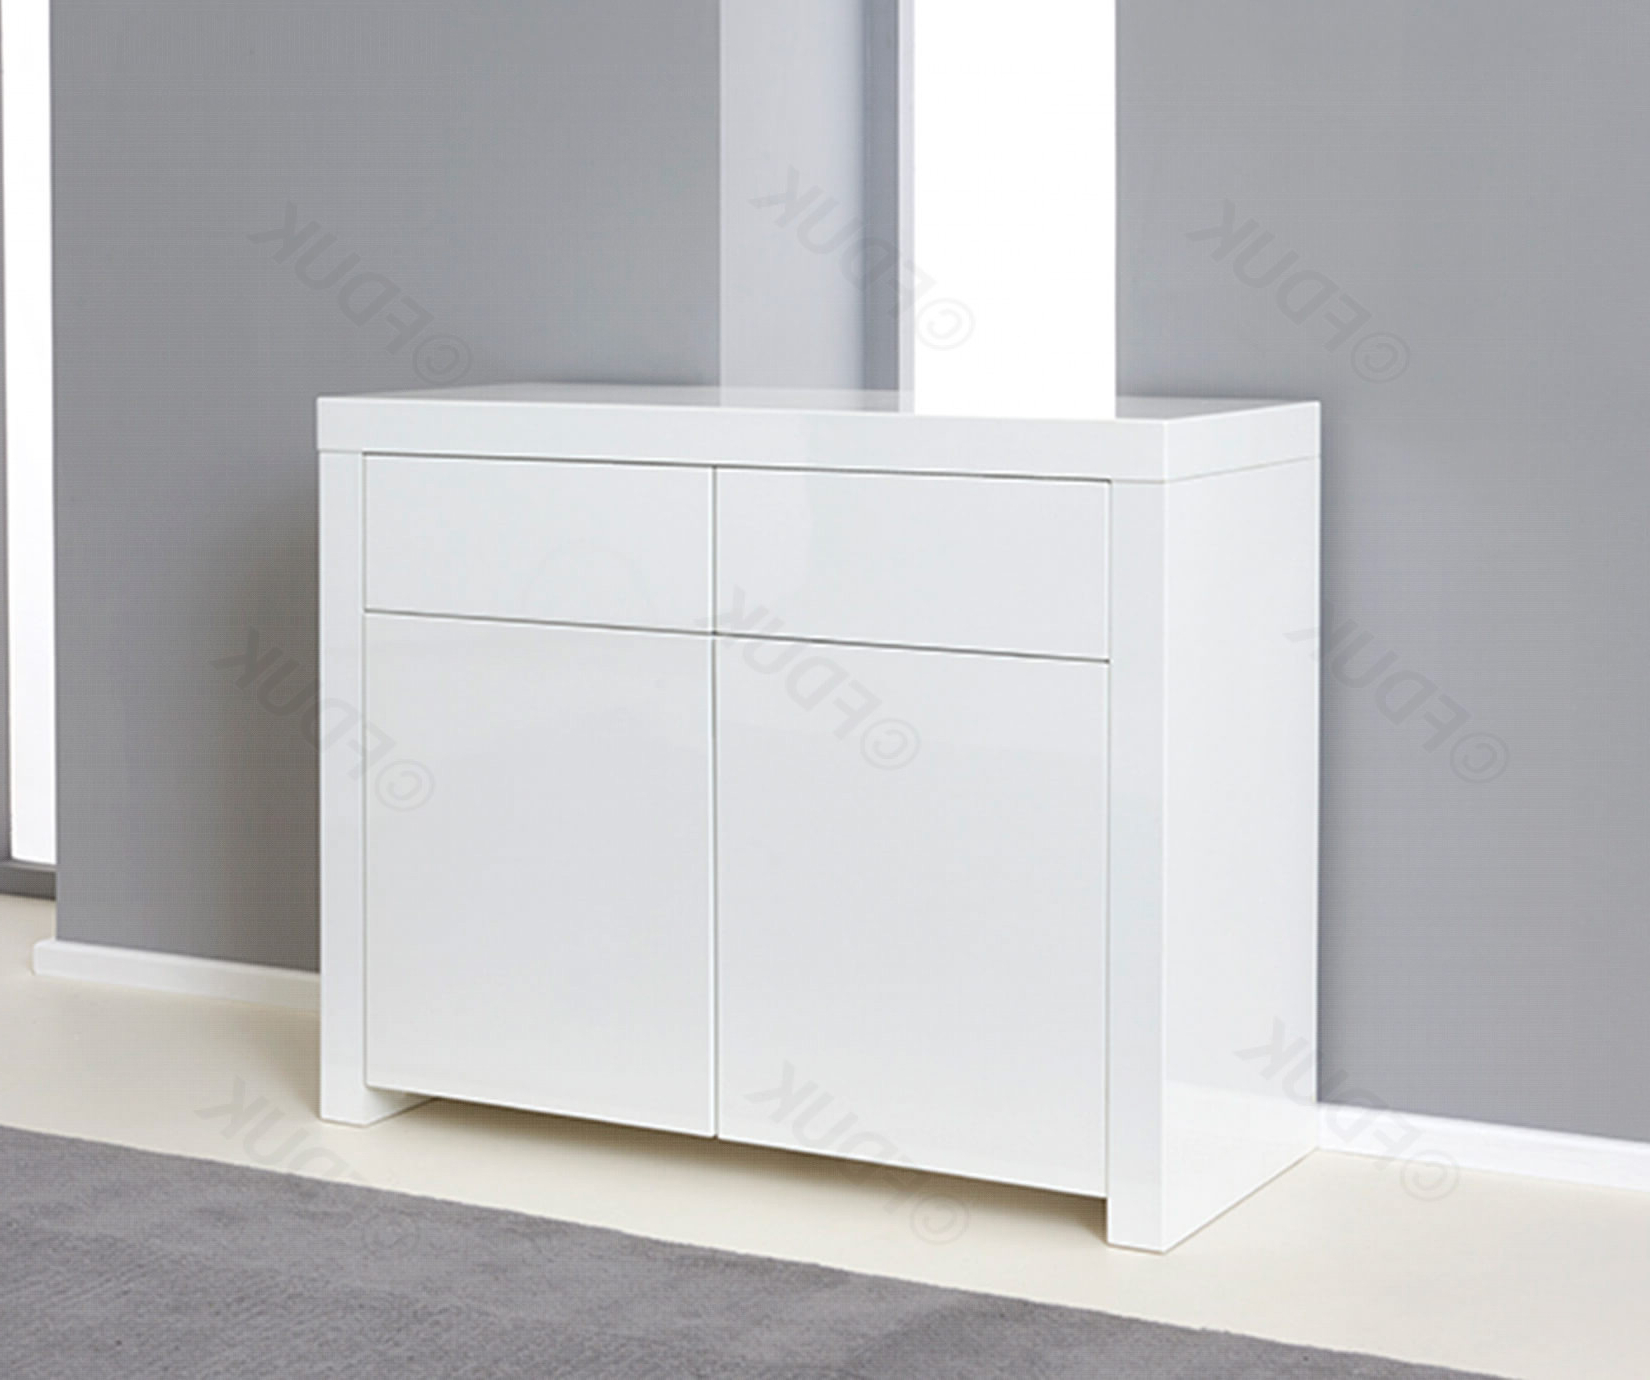 Widely Used Mark Harris Hereford 2 Door 2 Drawer White High Gloss Sideboard Pertaining To Malibu 2 Door 1 Drawer Sideboards (Gallery 14 of 20)